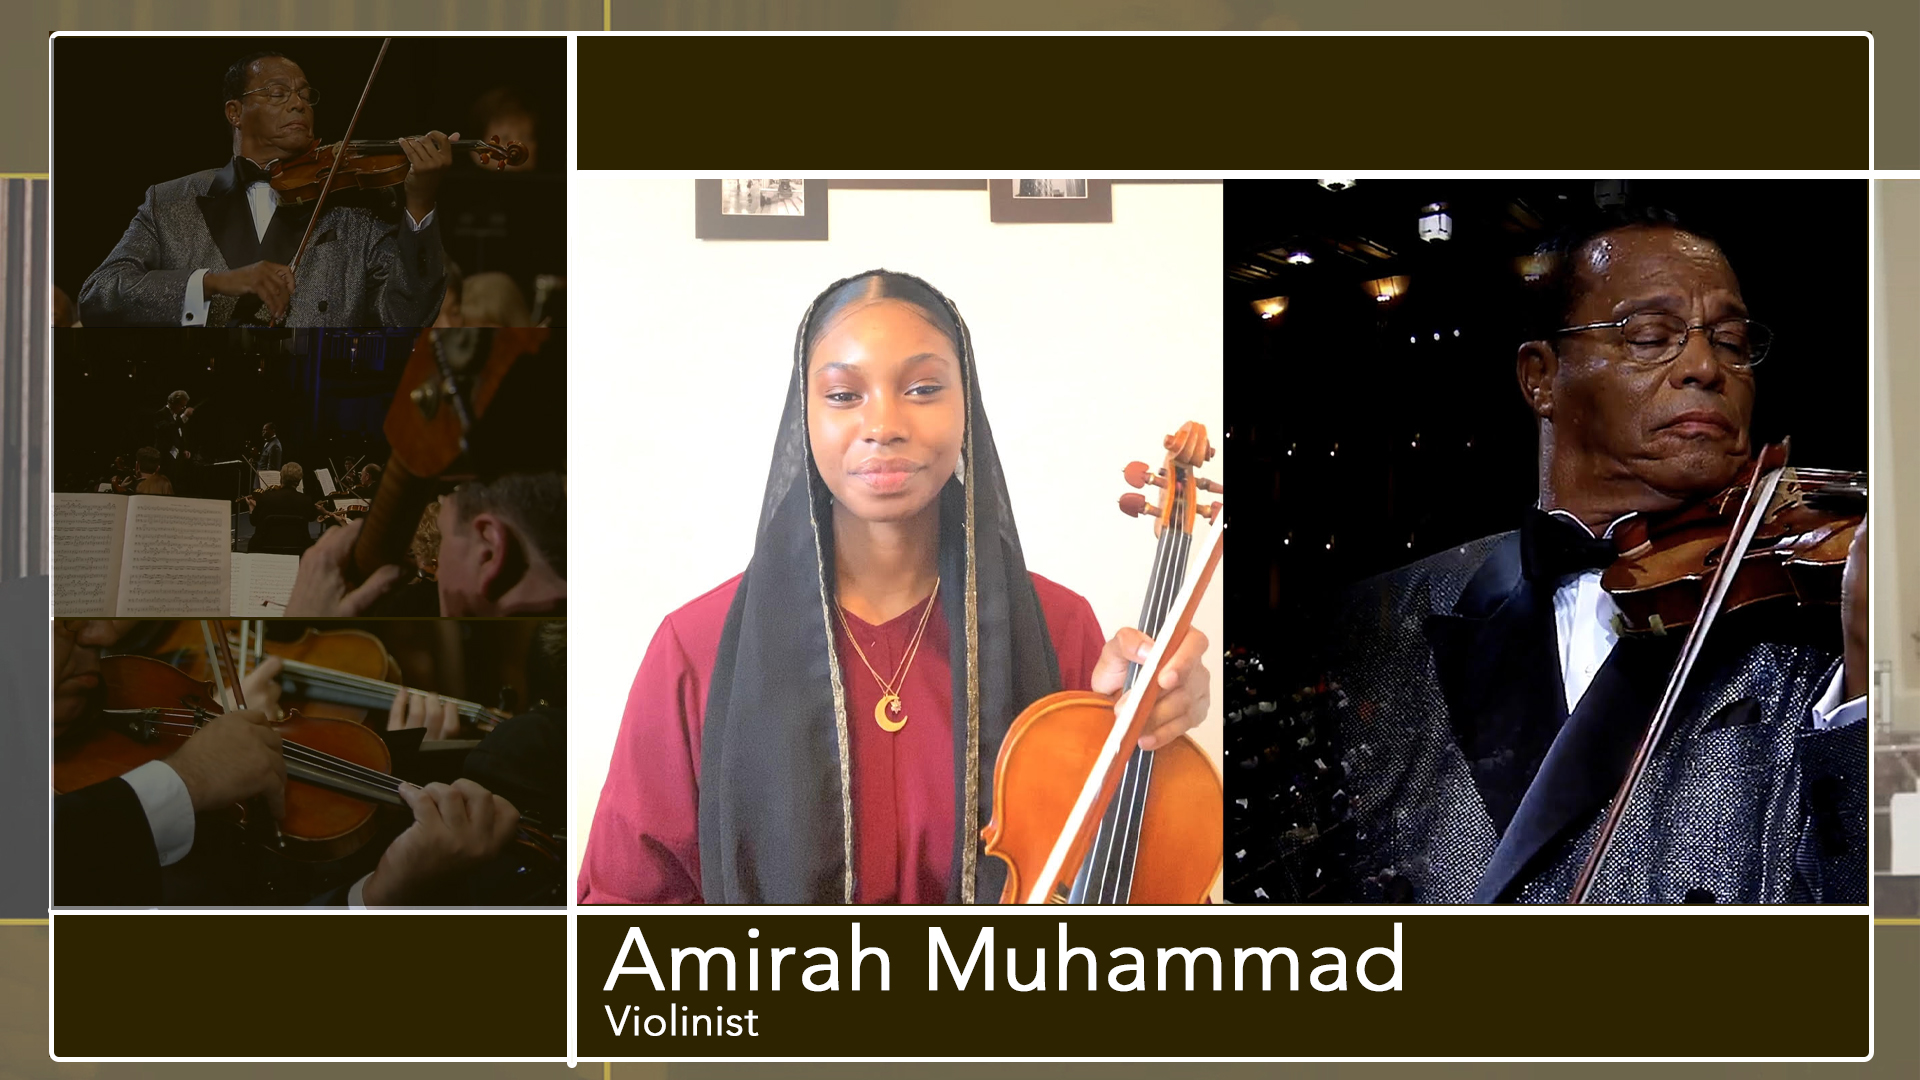 Amirah Muhammad speaks on the Beethoven Violin Concerto performed by Minister Louis Farrakhan